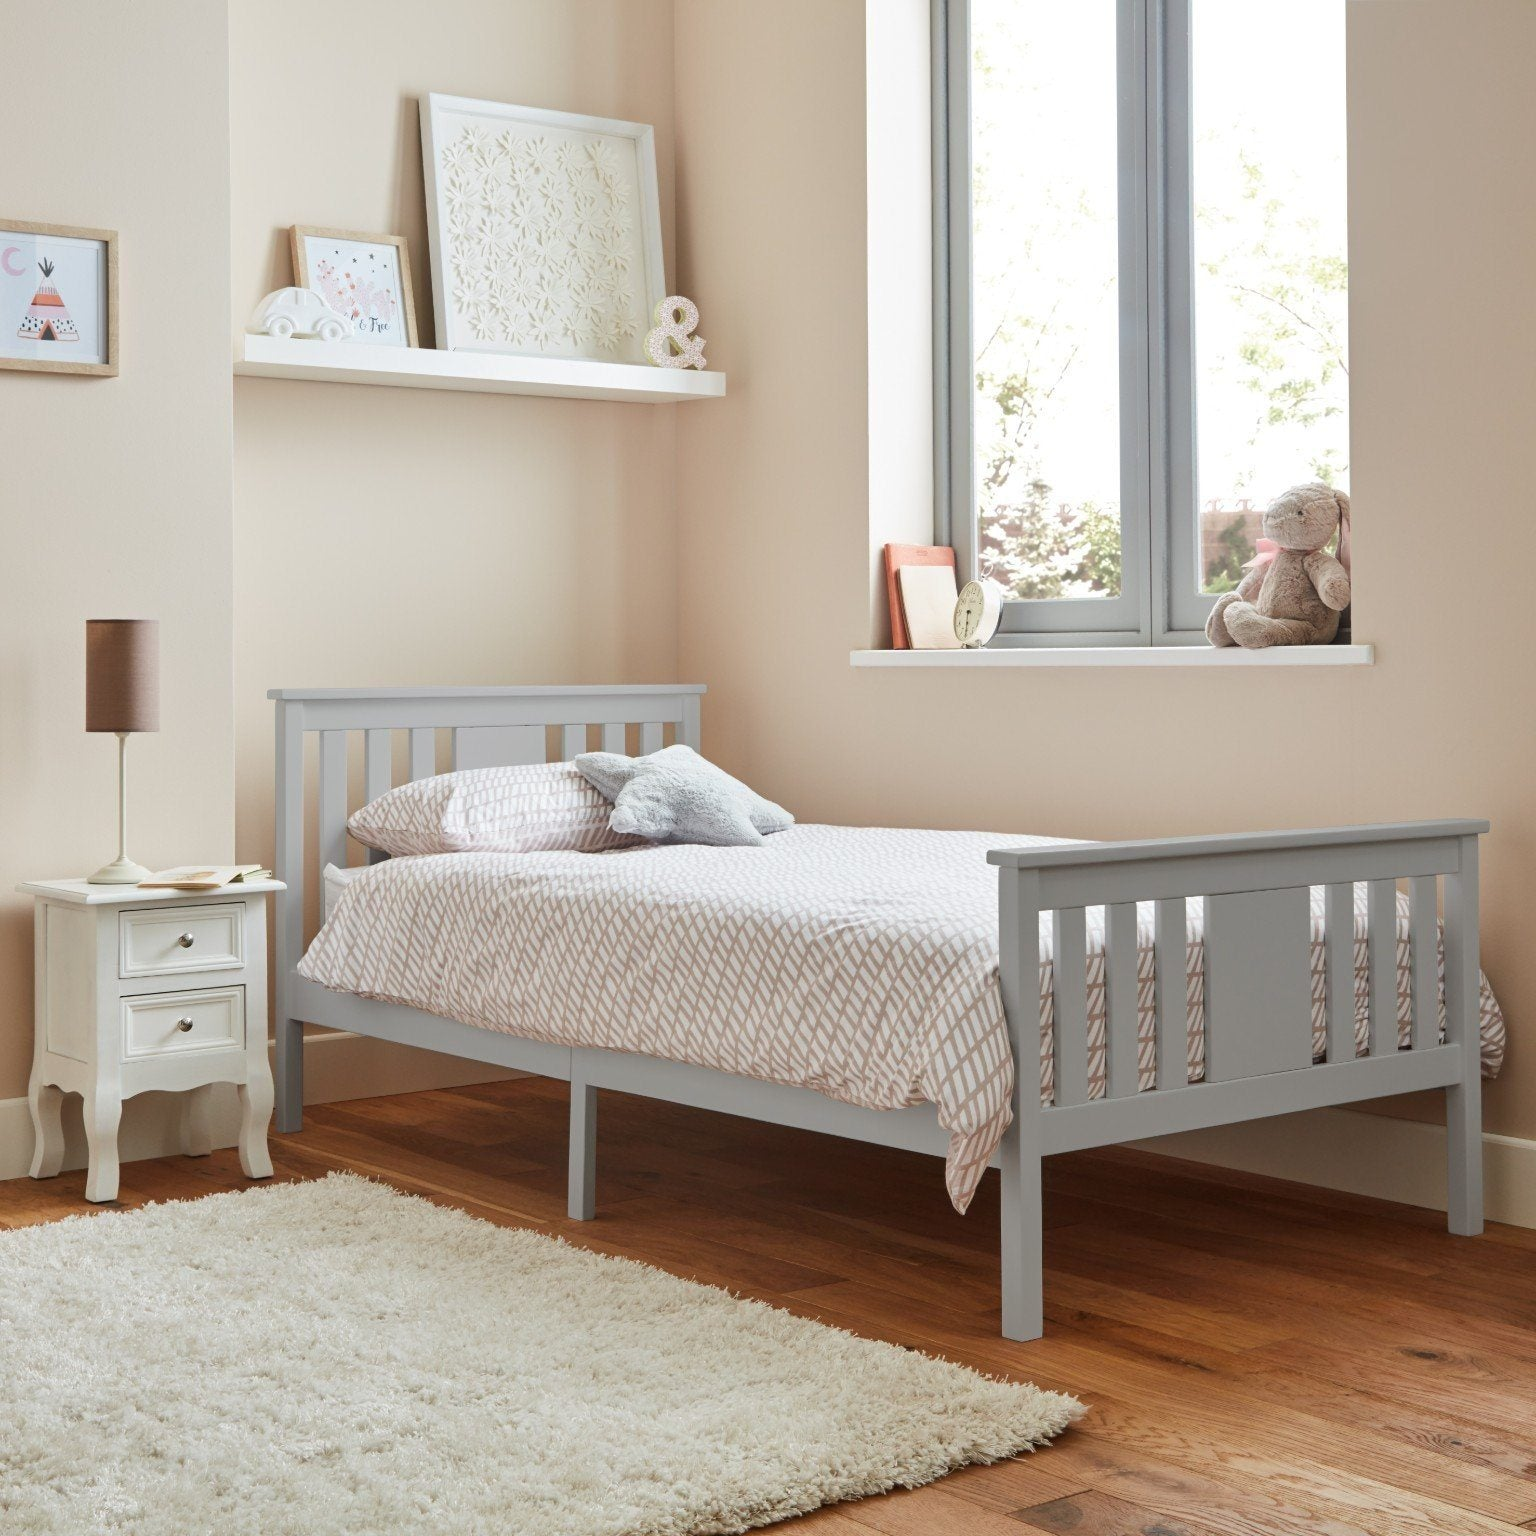 Grey wooden single bed  - Laura James